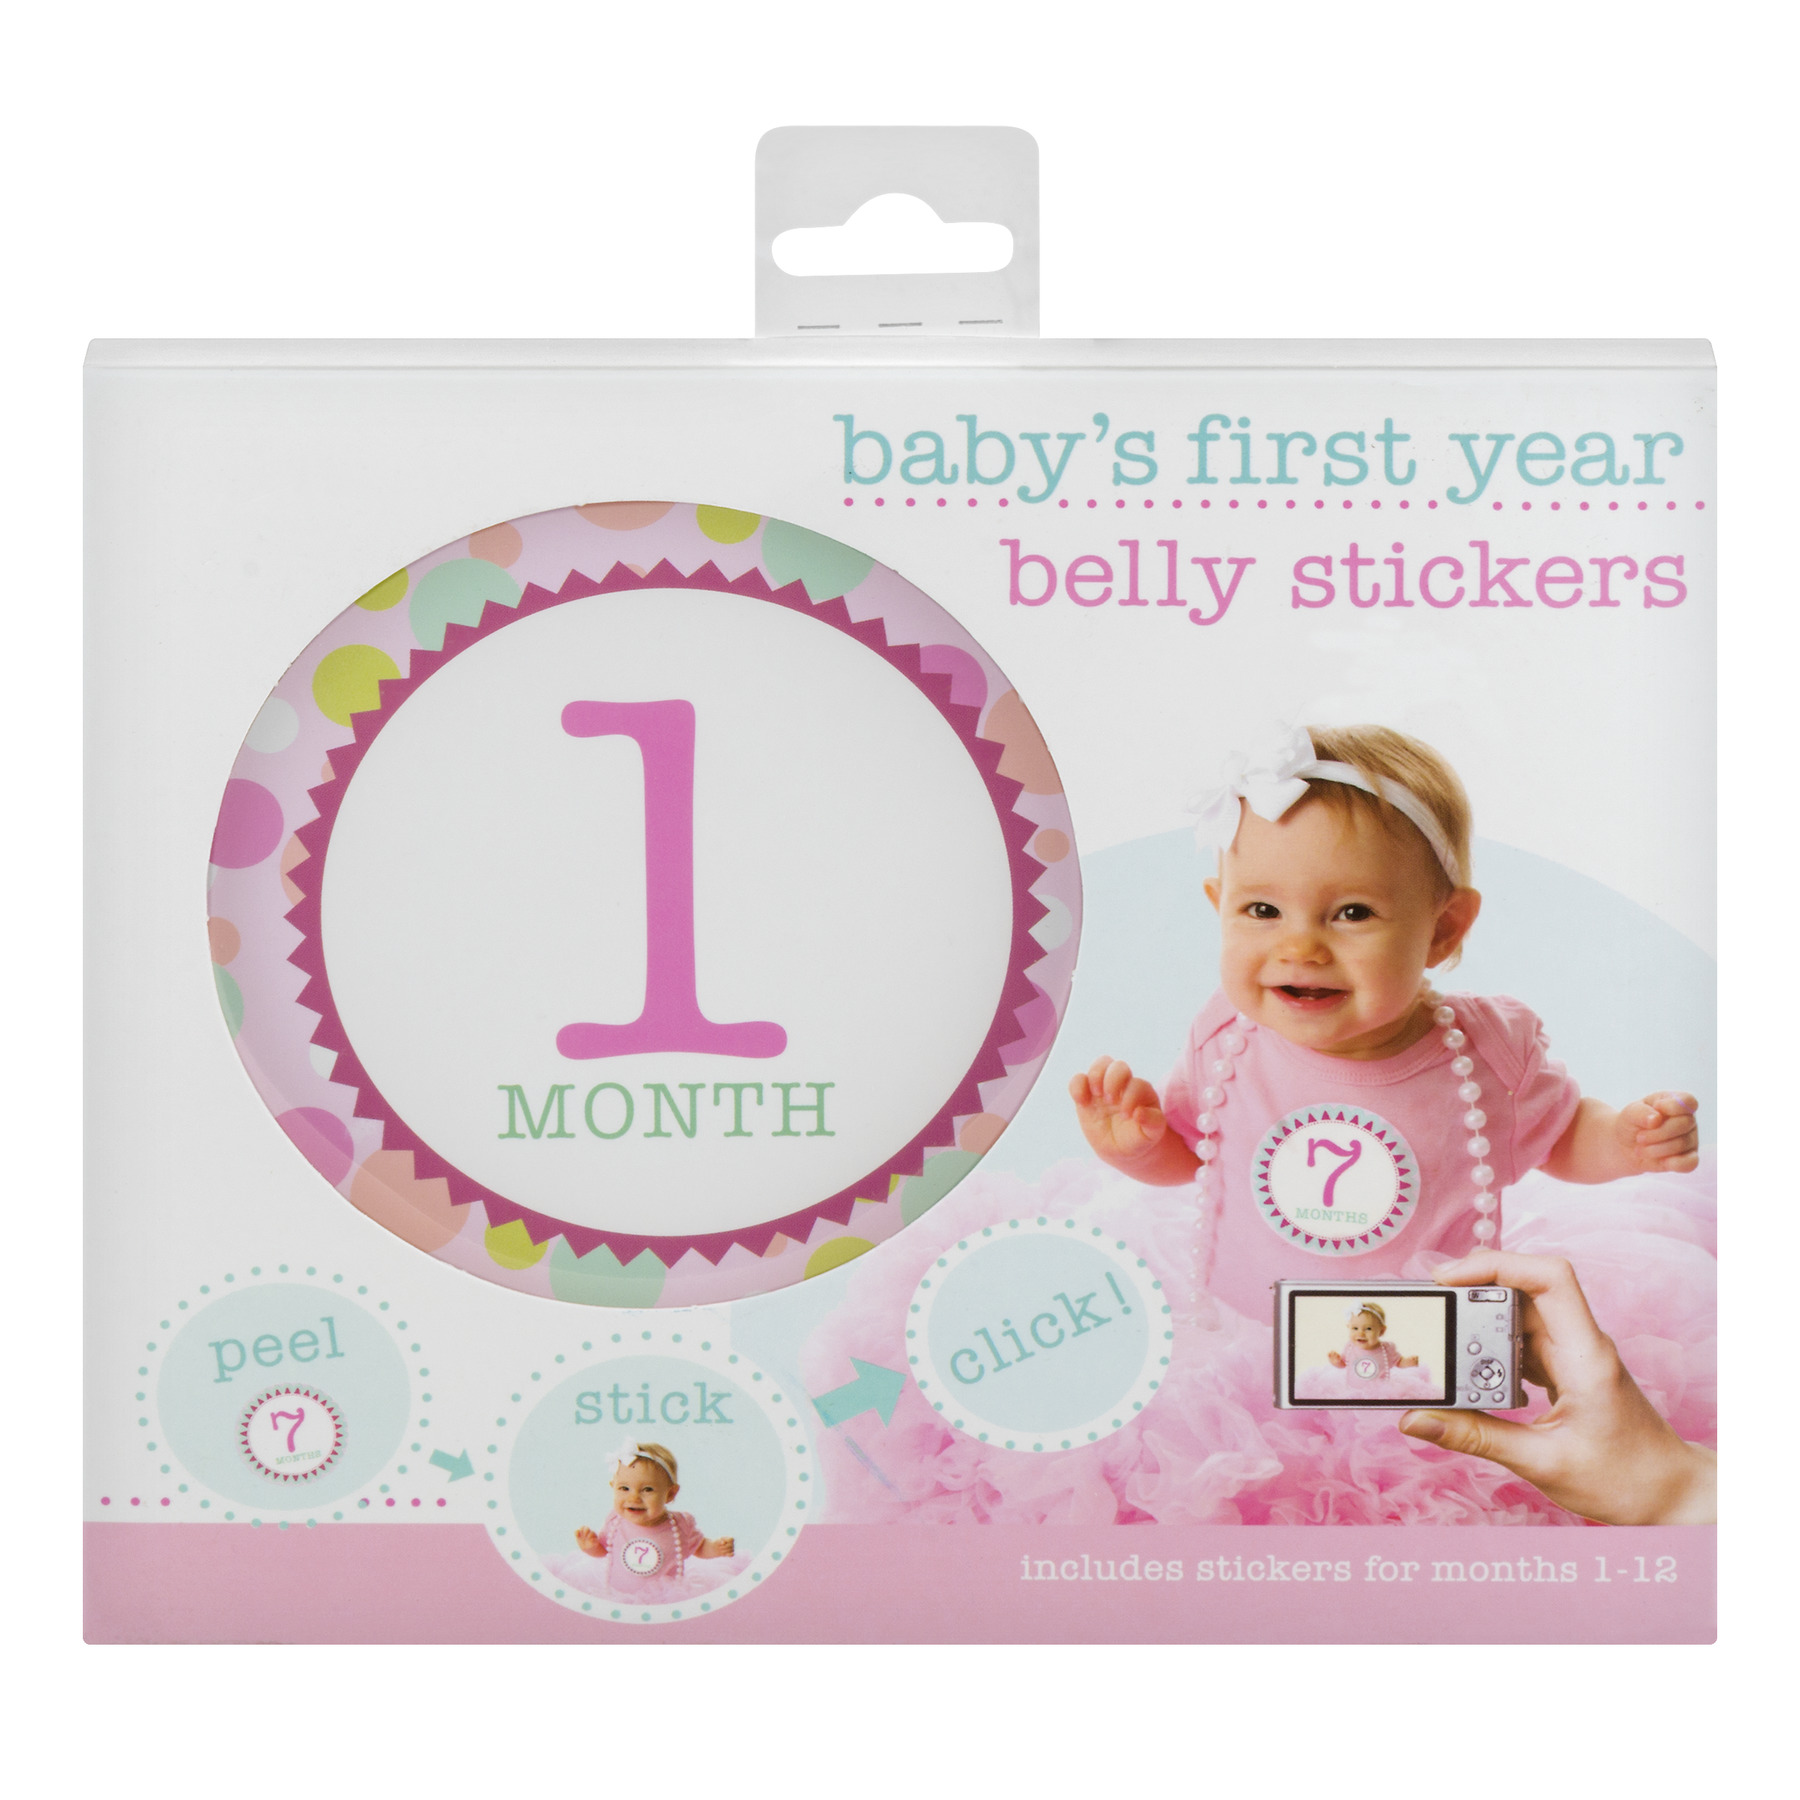 Stepping Stones Baby's First Year Belly Stickers - 12 CT12.0 CT